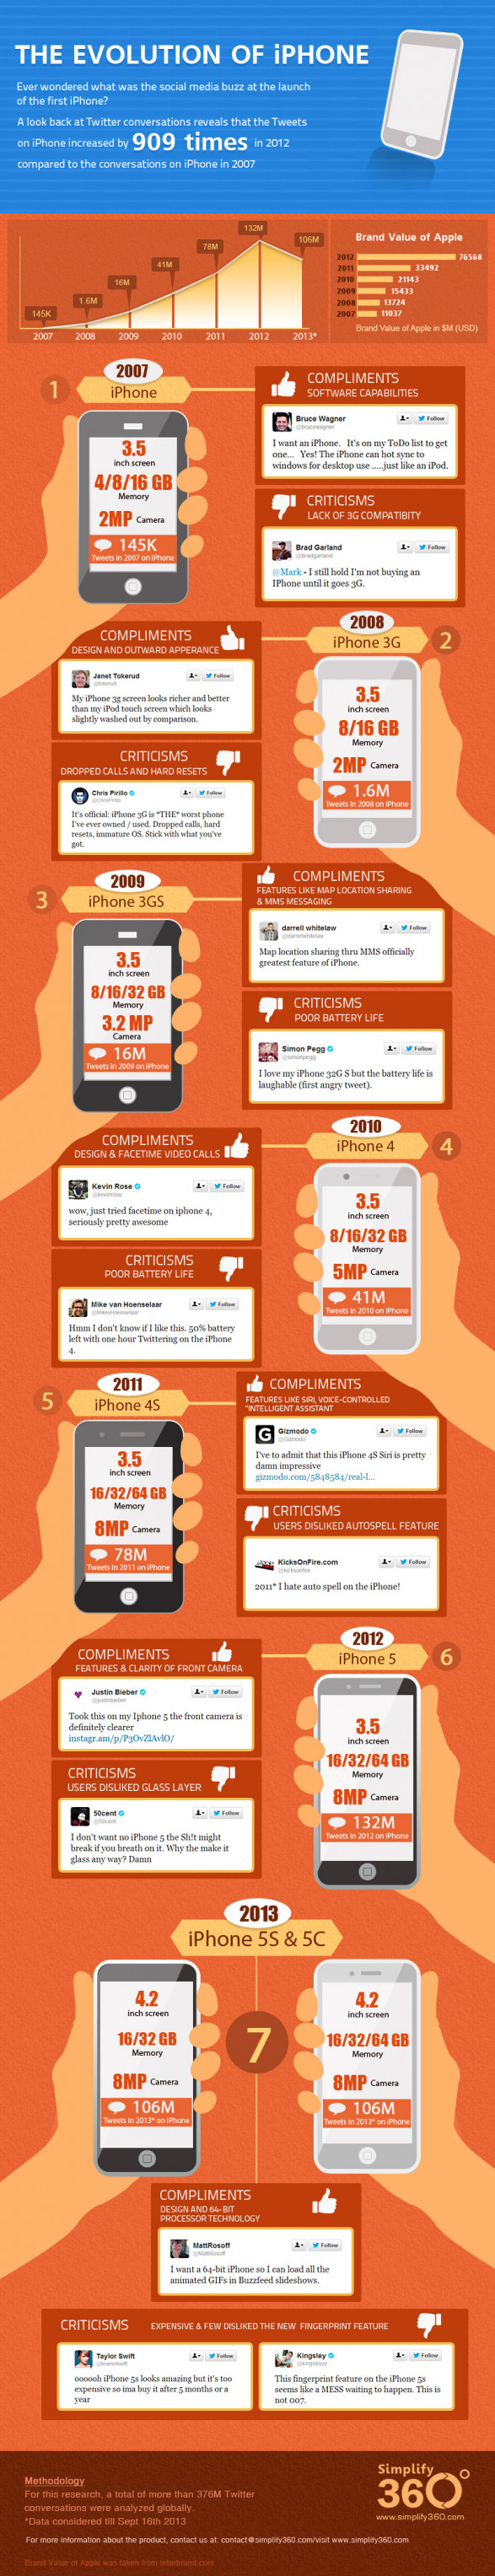 How the social chatter of iphone launch has changed over the years?